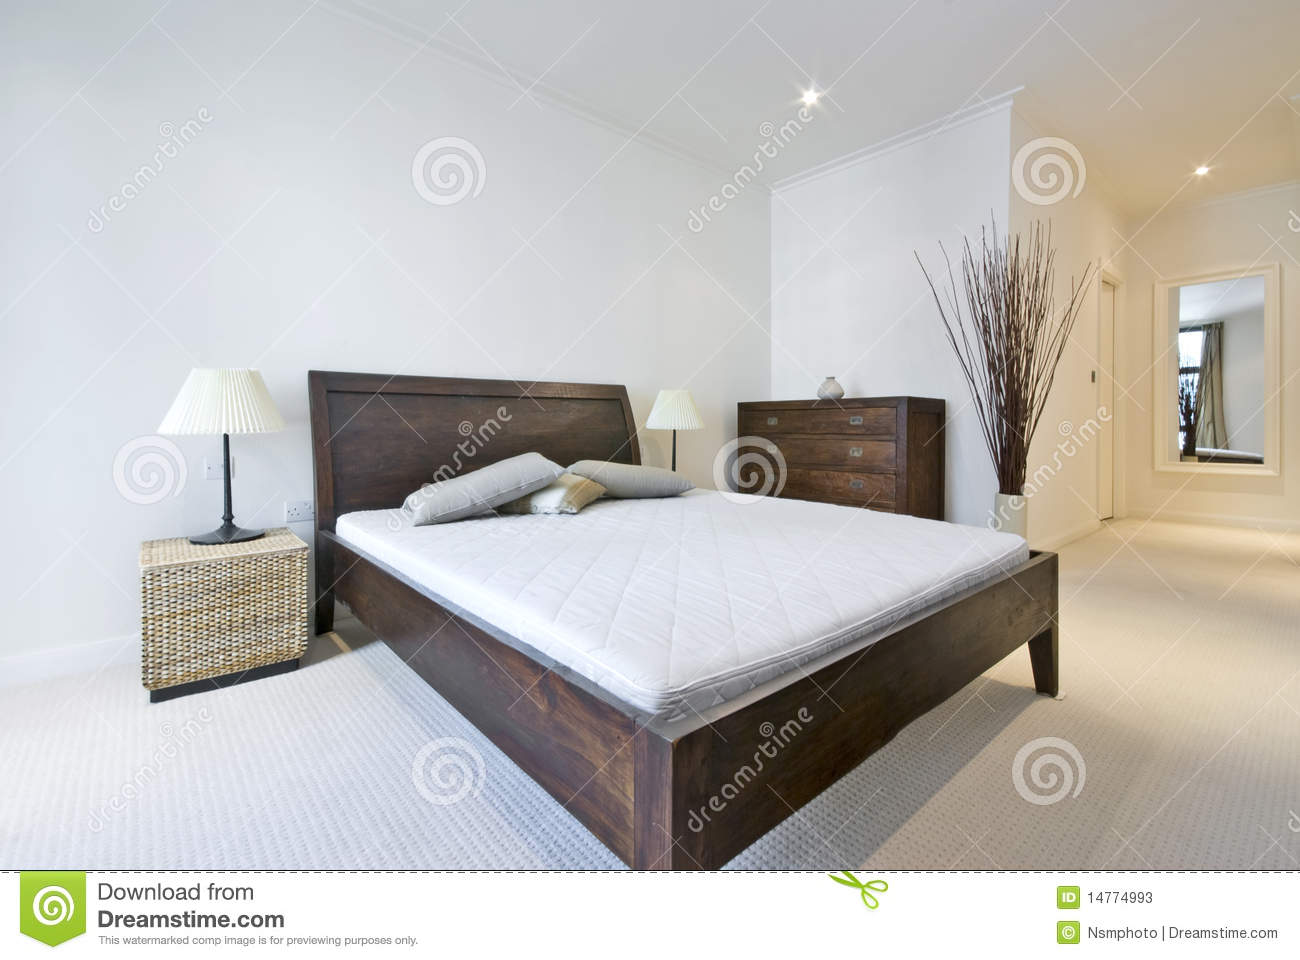 . Modern Double Bedroom With King Size Bed Stock Image   Image of